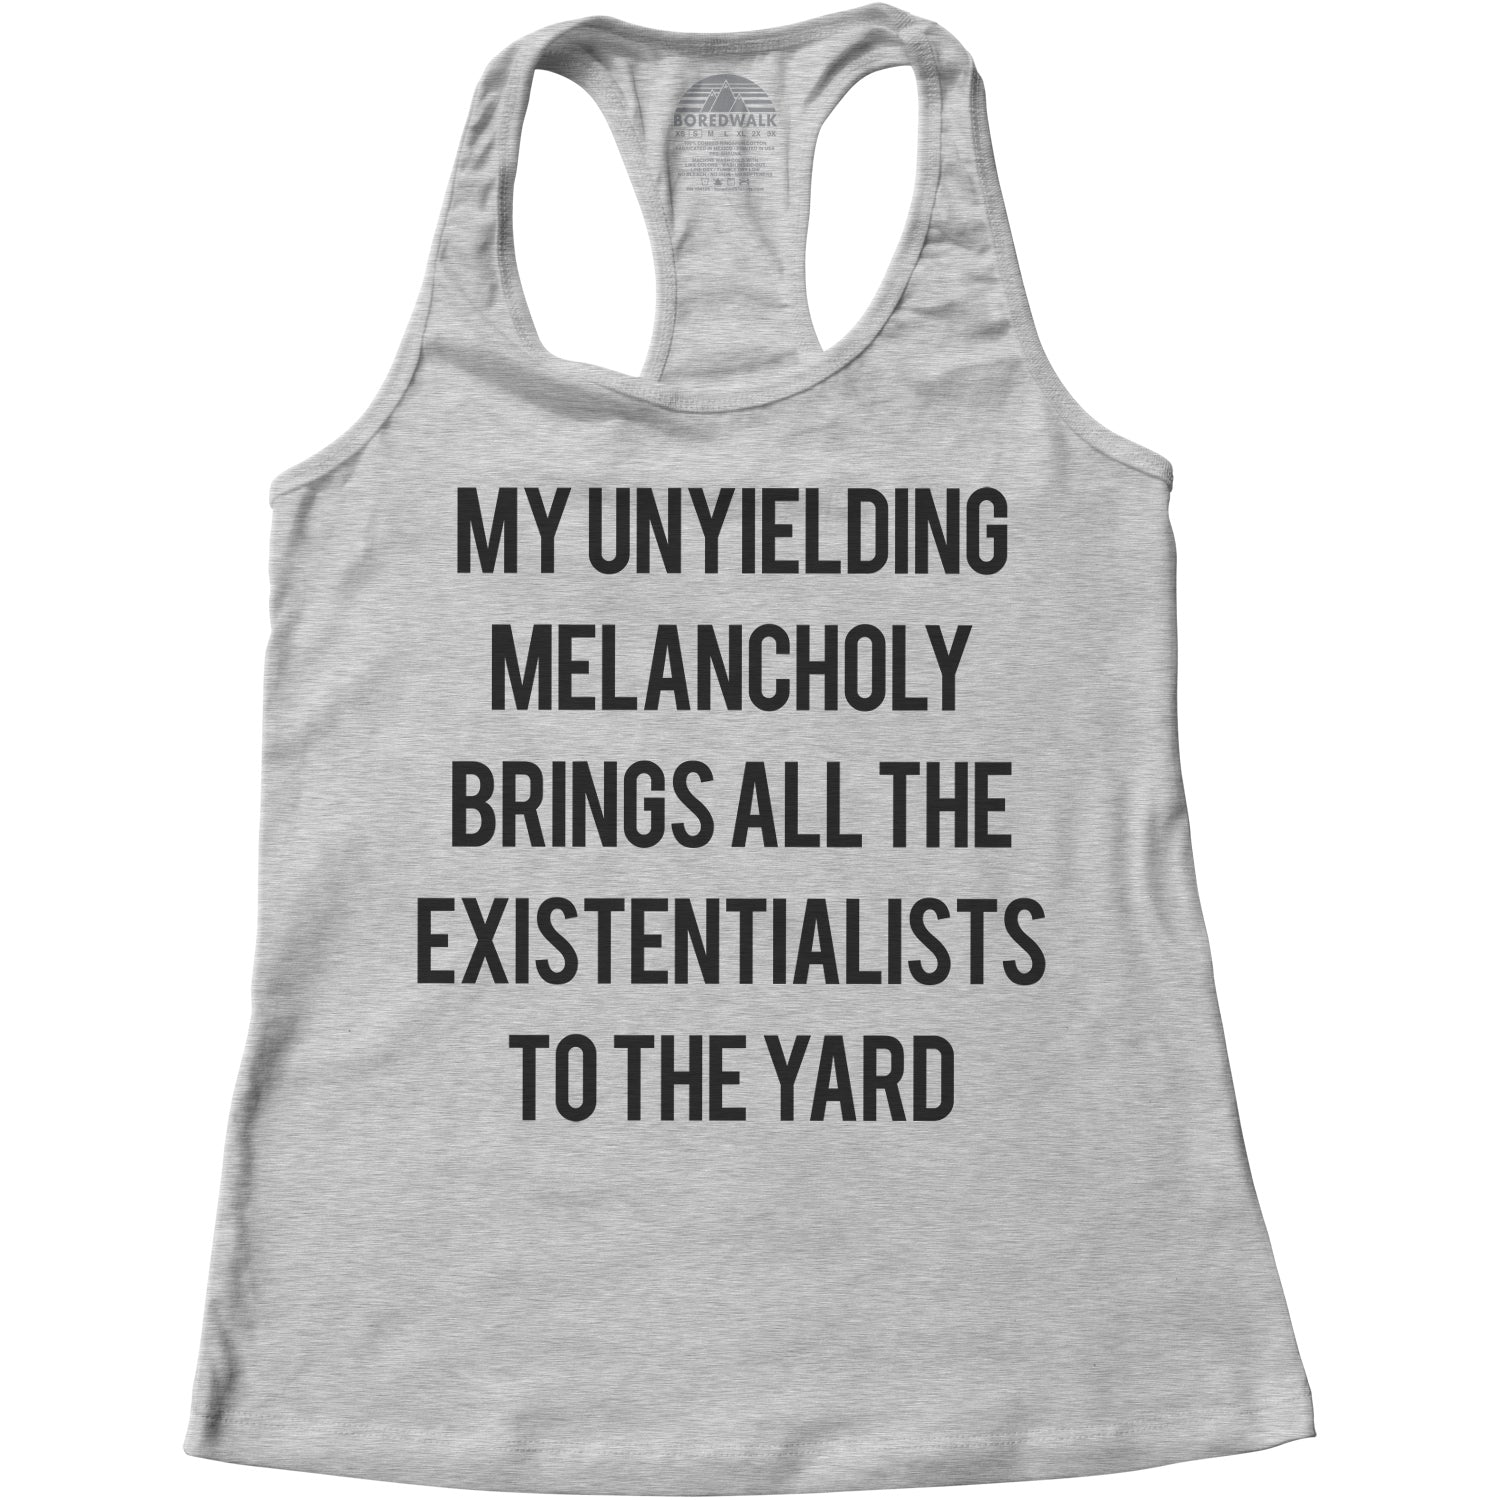 Women's My Unyielding Melancholy Brings All The Existentialists To The Yard Racerback Tank Top